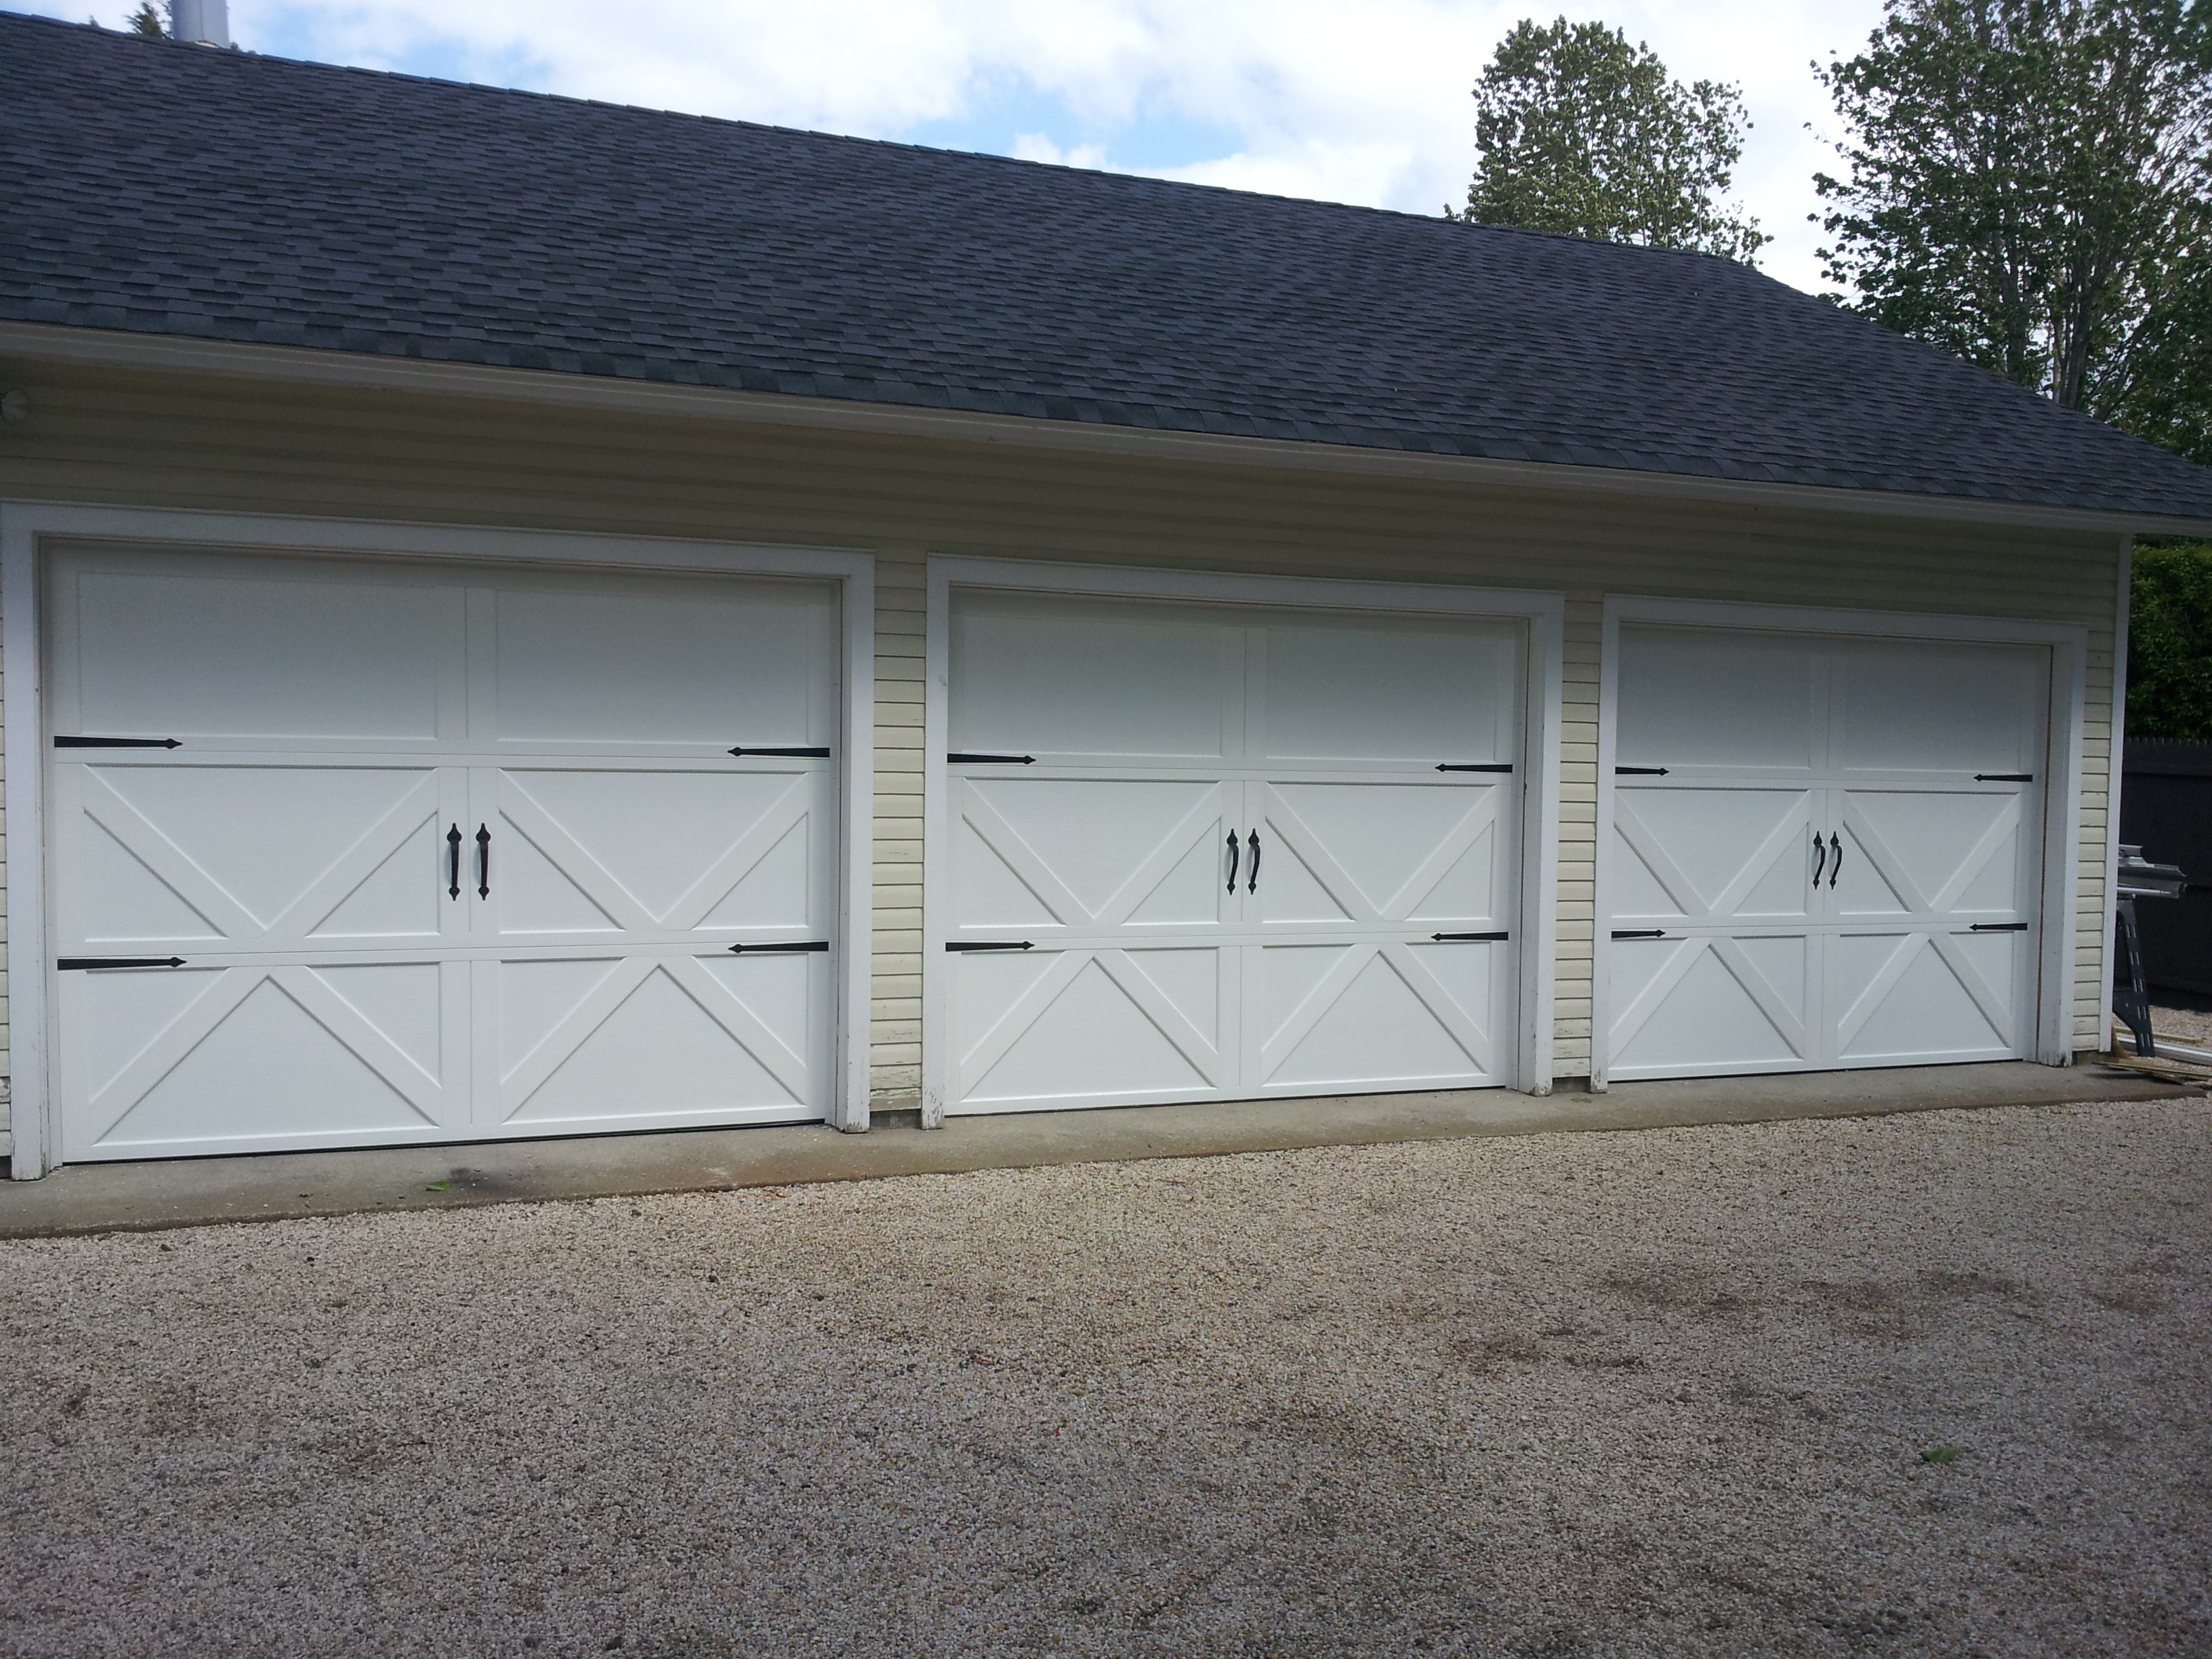 2448 #576874 Big A's Garage Doors Inc. In Manorville NY 11949 ChamberofCommerce  save image Ab Garage Doors 36473264